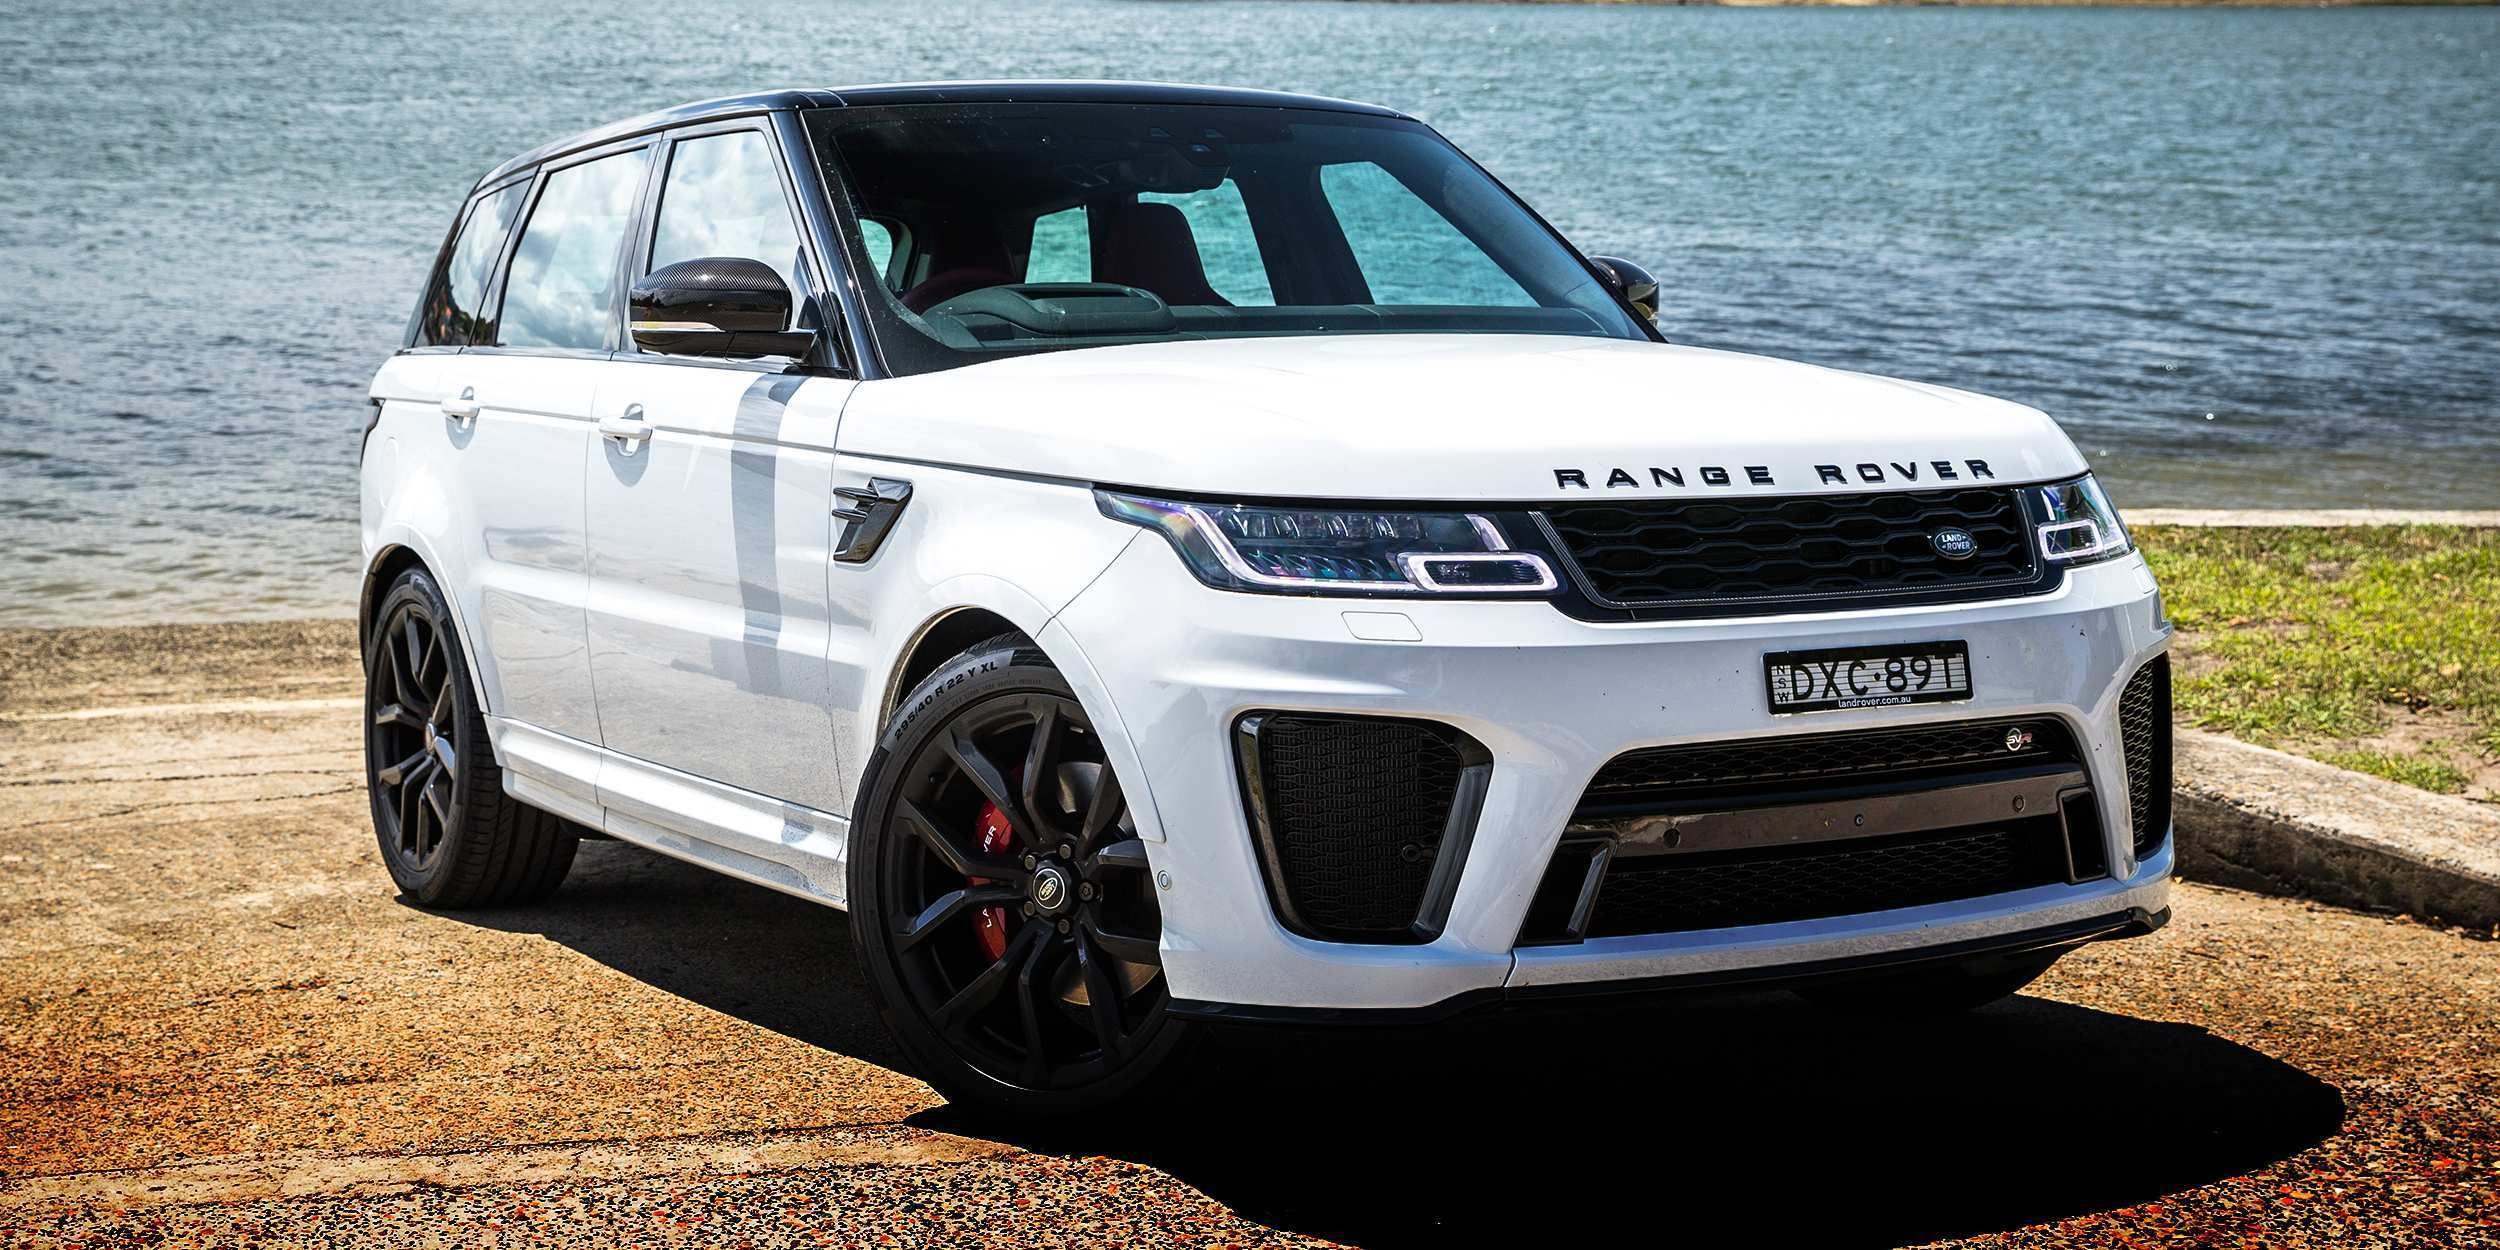 97 The Best 2019 Land Rover Svr Exterior And Interior